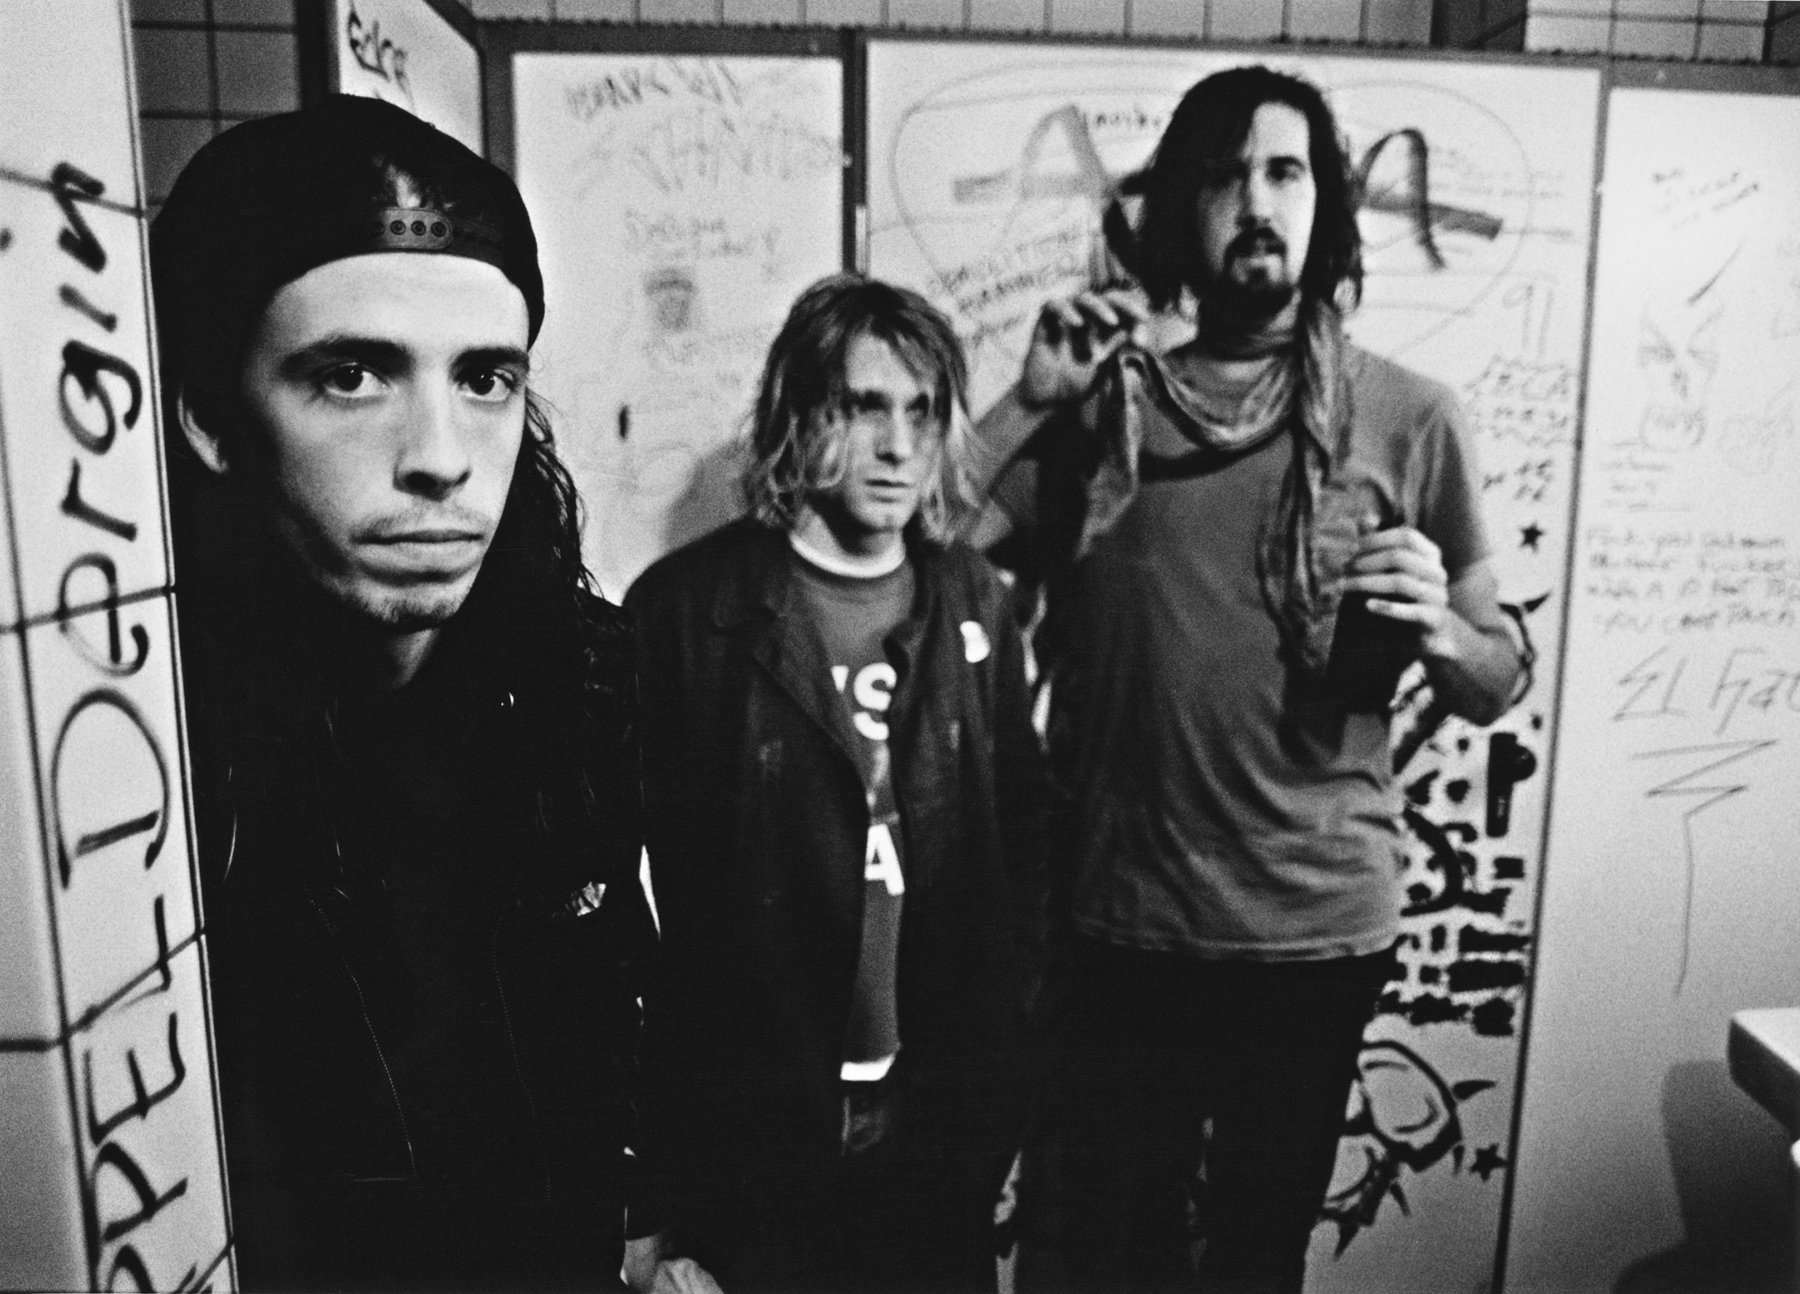 No Apologies: The Best of Nirvana